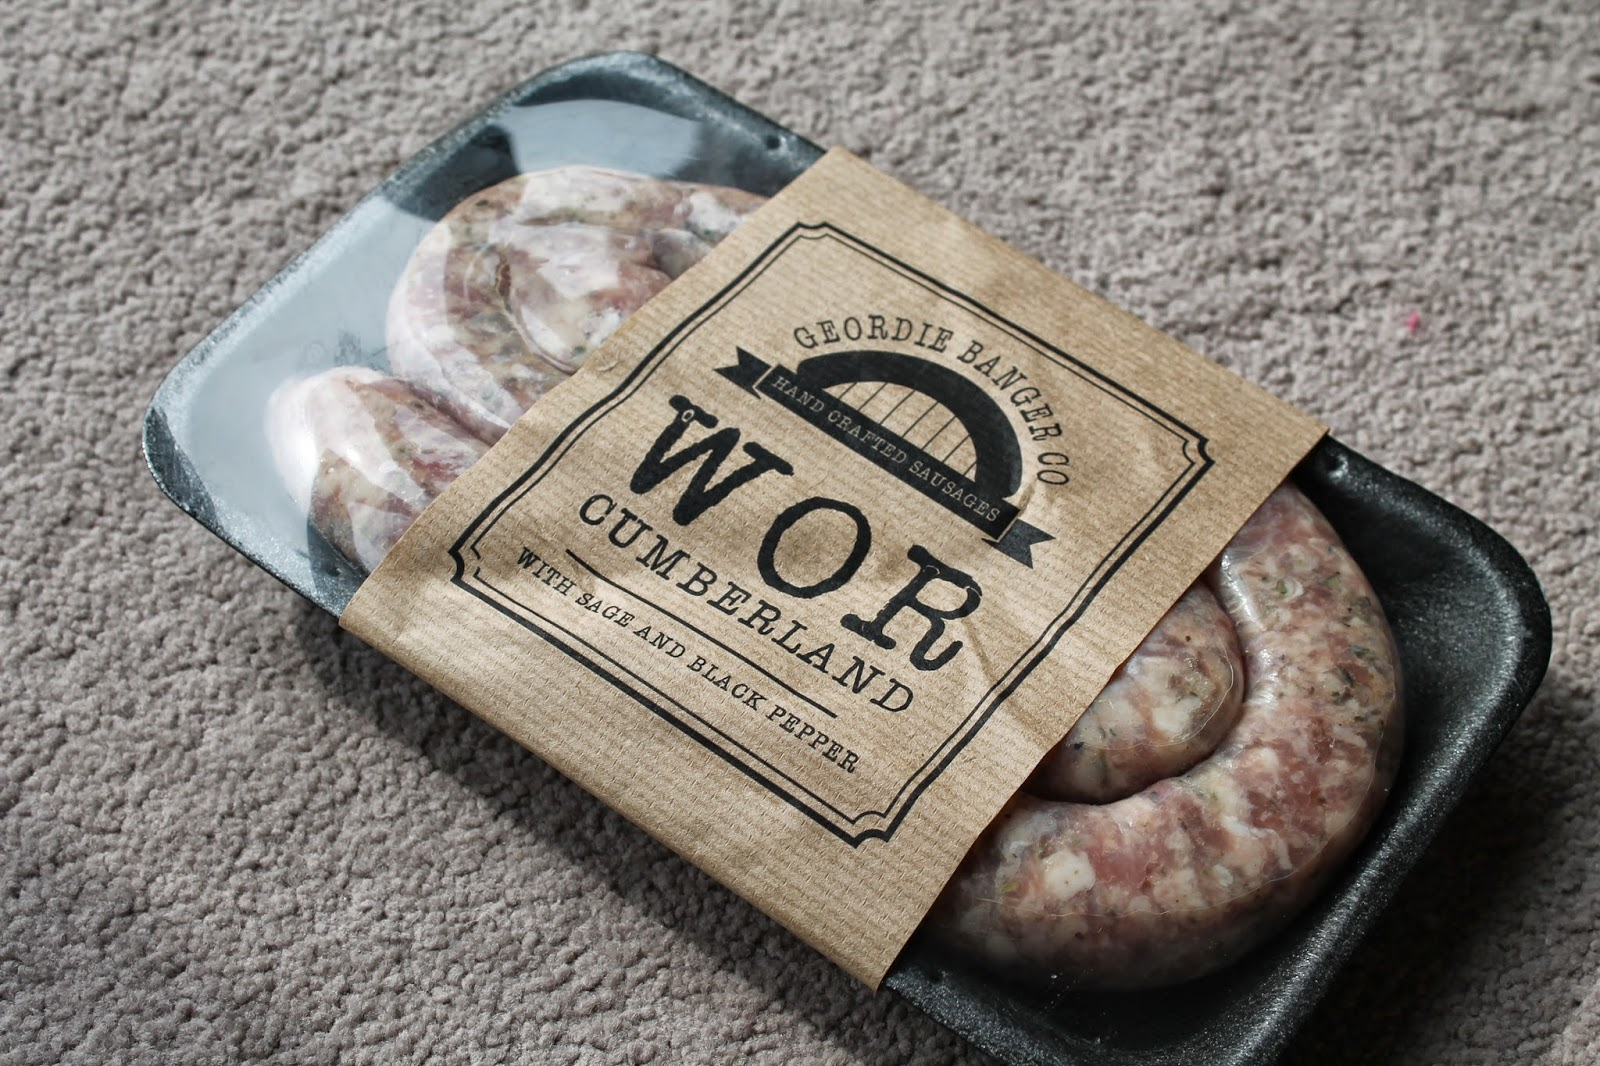 Geordie Banger Co. Sausages - Wor Cumberland Review